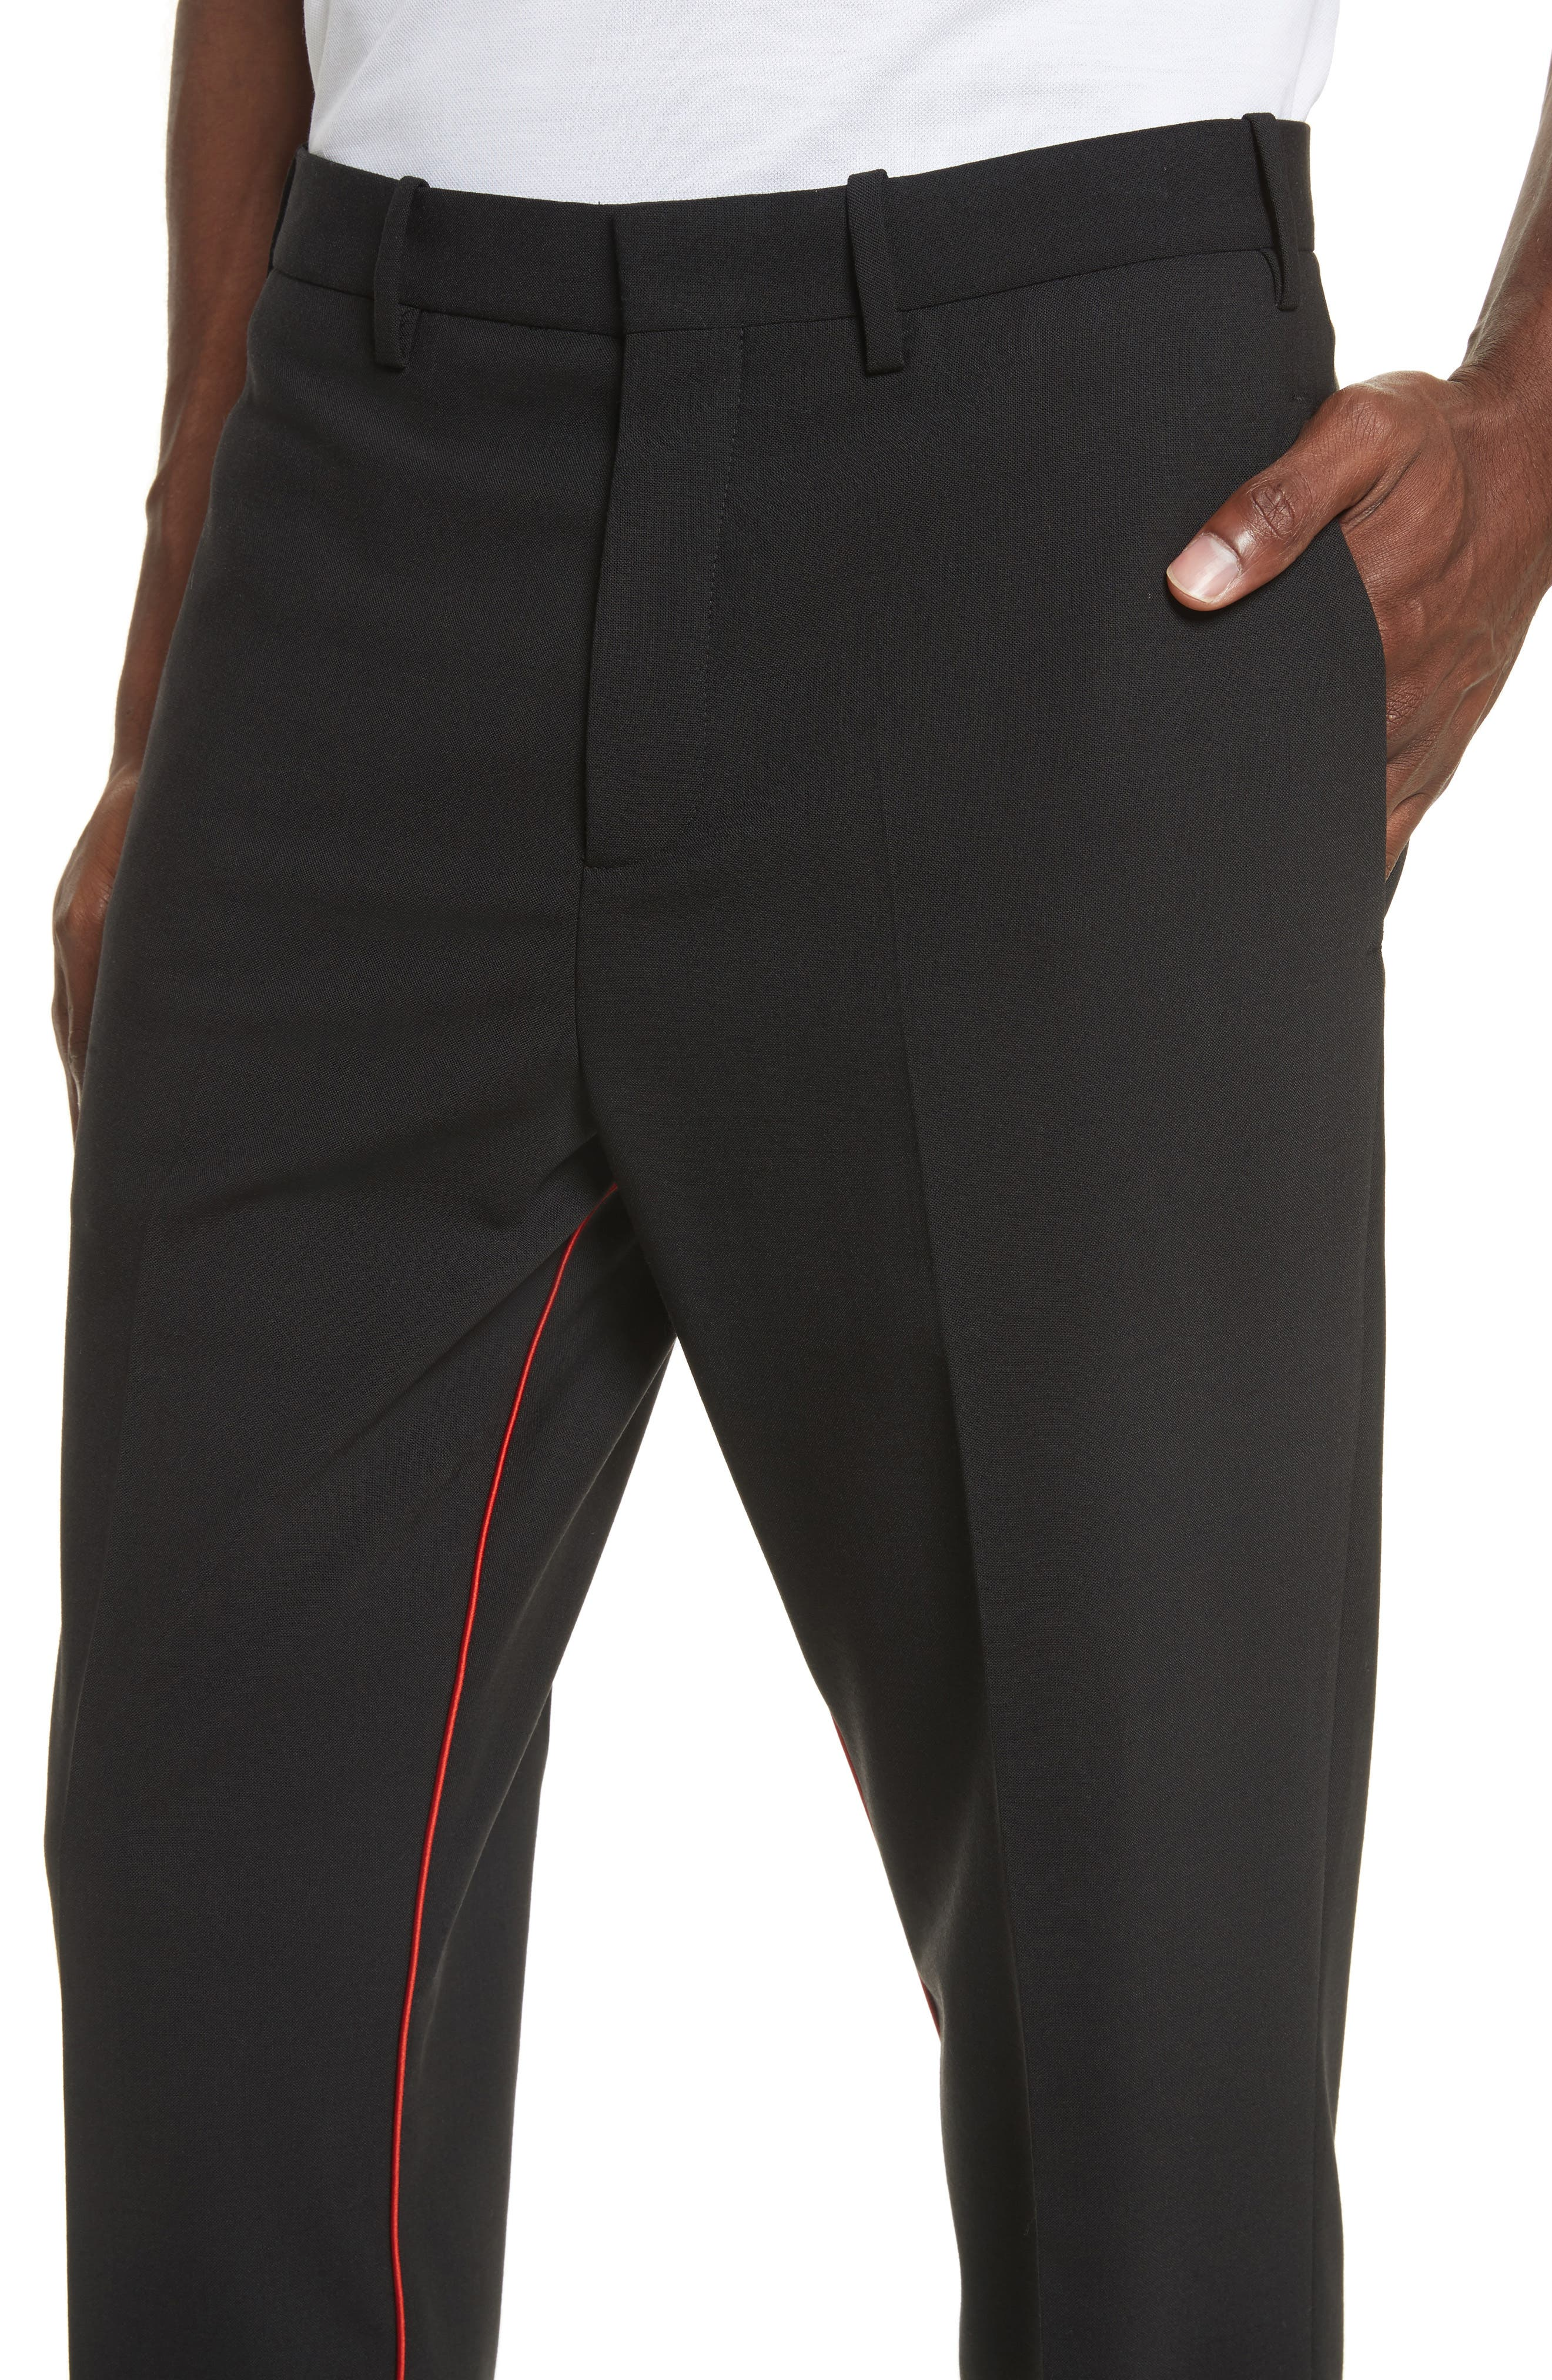 Piped Woven Jogger Pants,                             Alternate thumbnail 4, color,                             Black/ Red